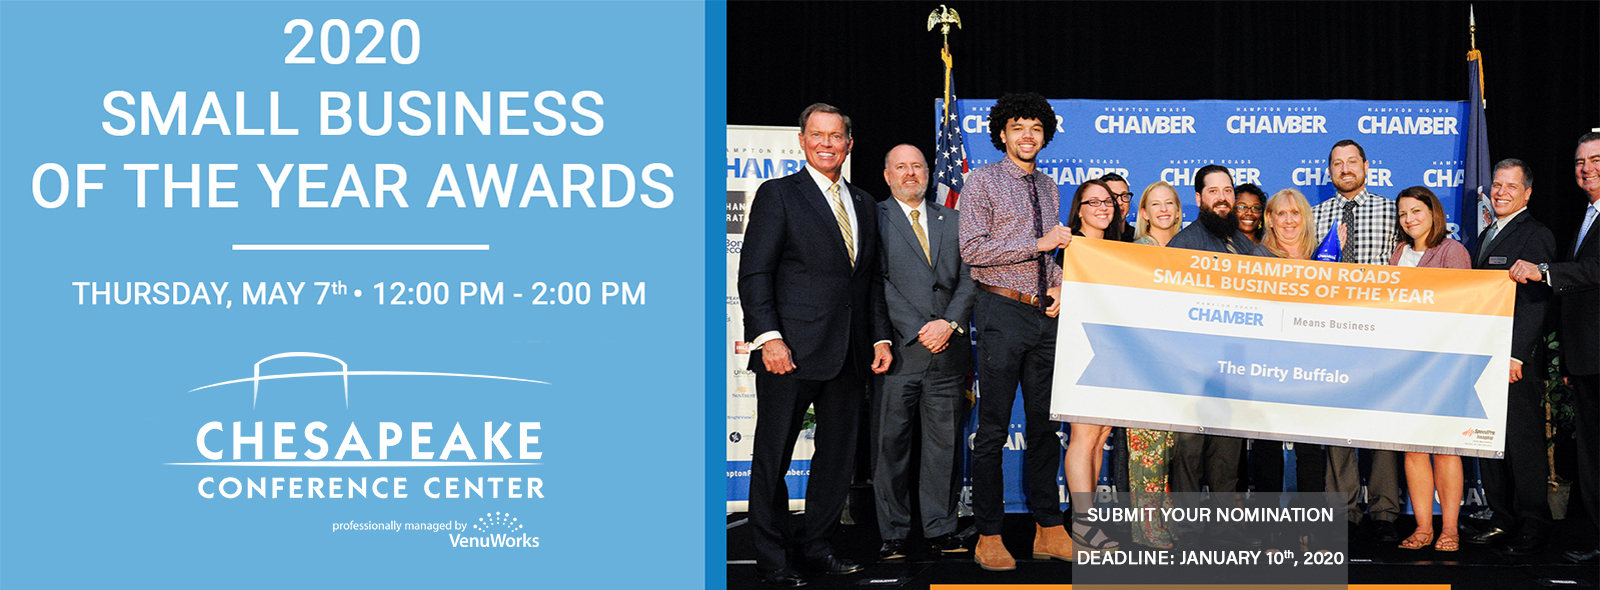 Now Accepting 2020 Small Business of the Year Nominations!